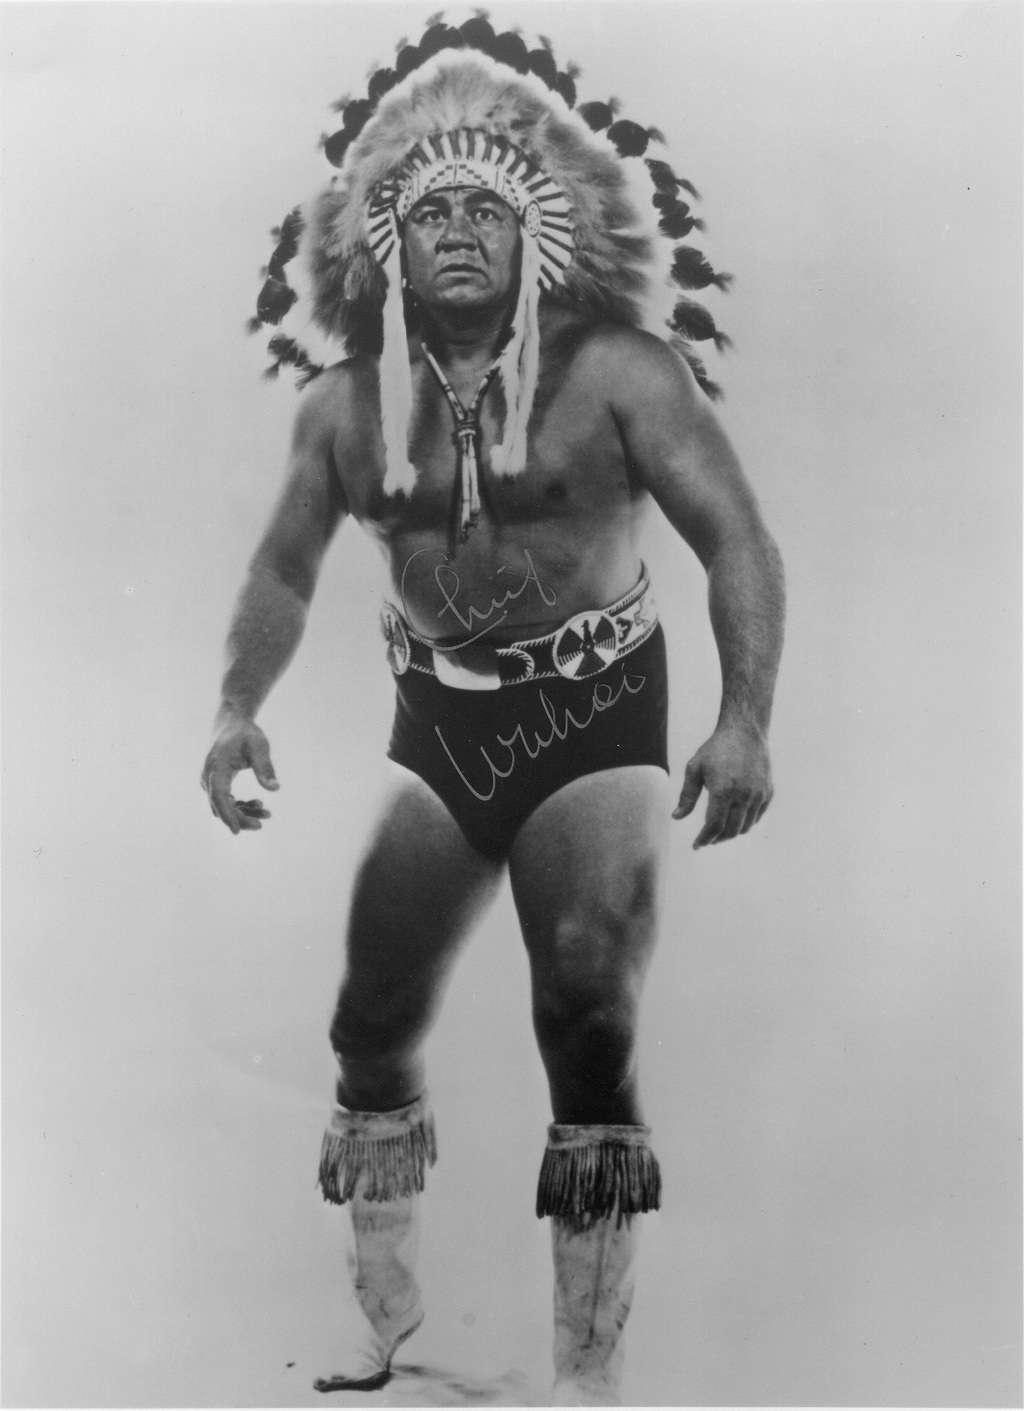 """Wahoo"" McDaniel / LegendsCollectibles.net"